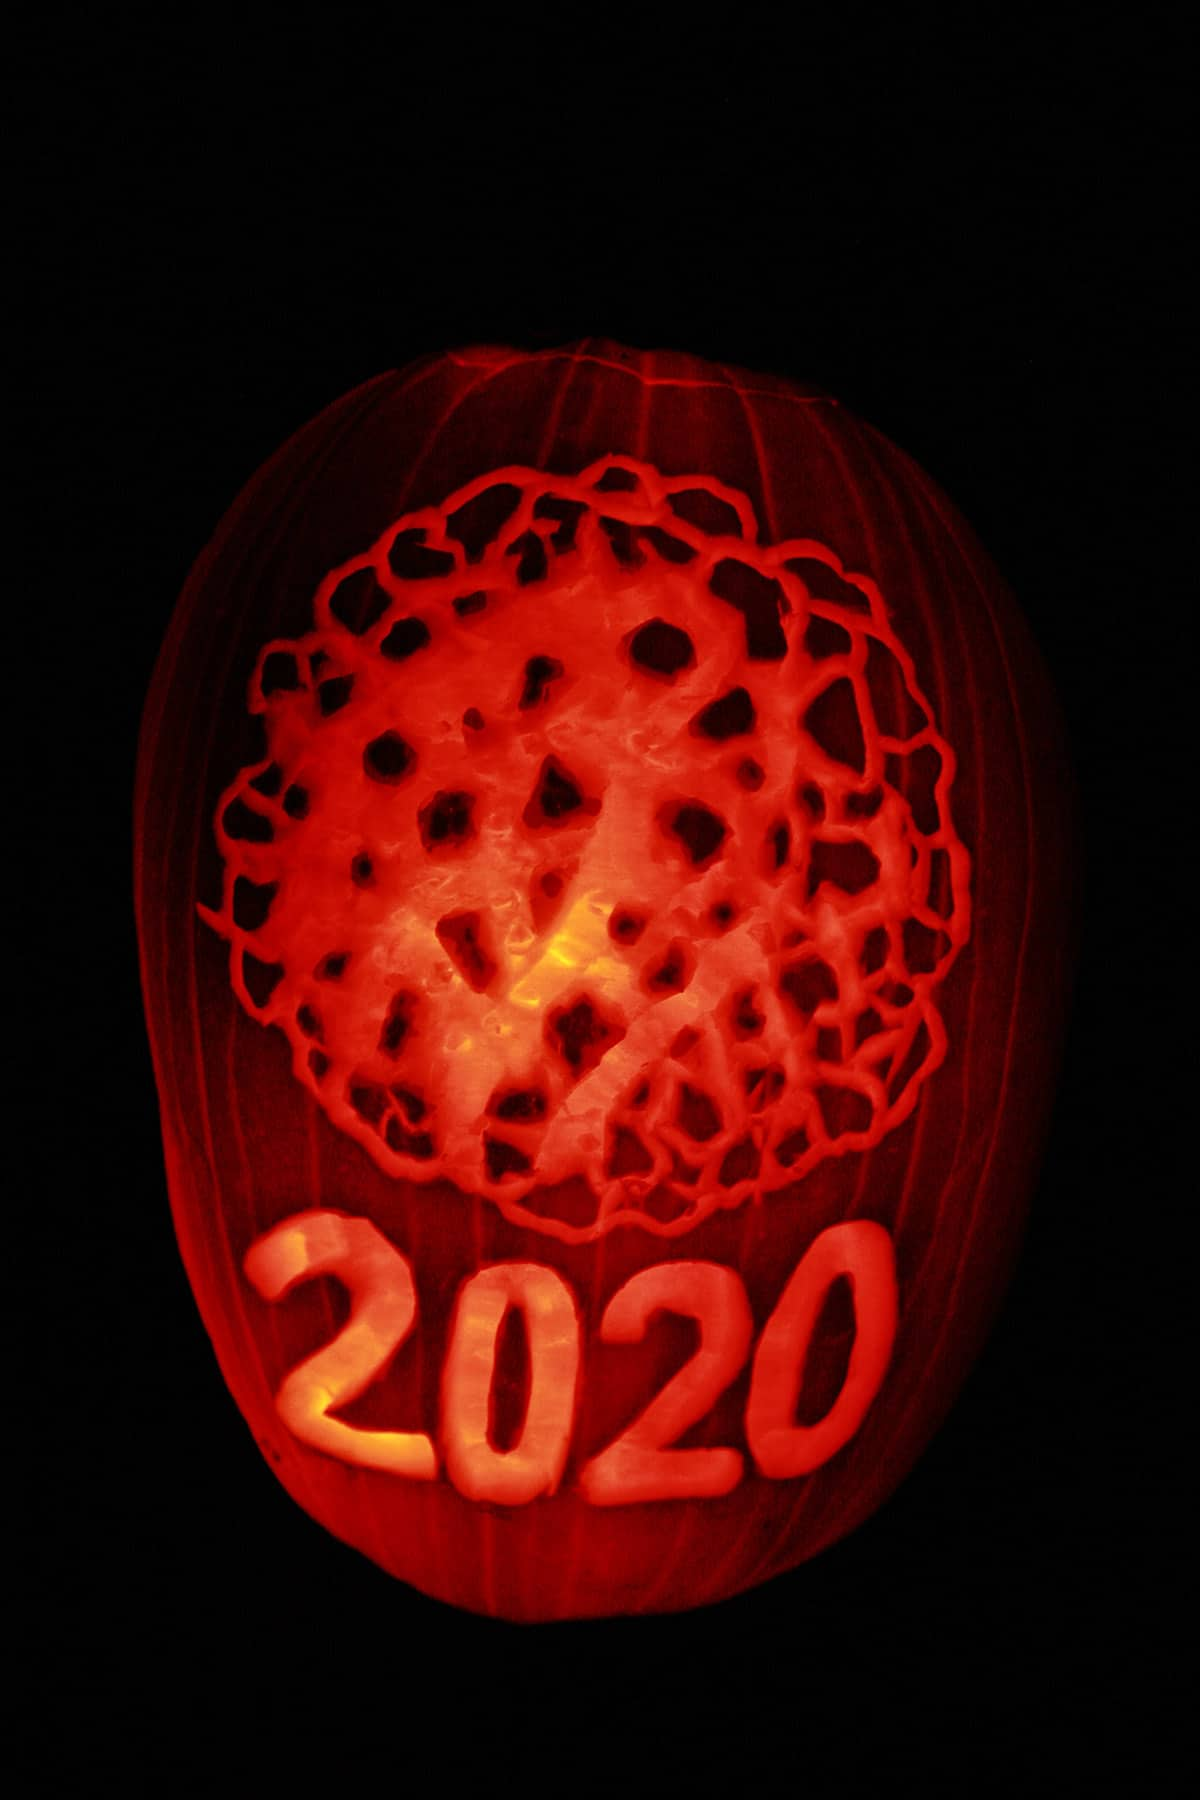 A Halloween pumpkin carved with a coronavirus design and 2020.